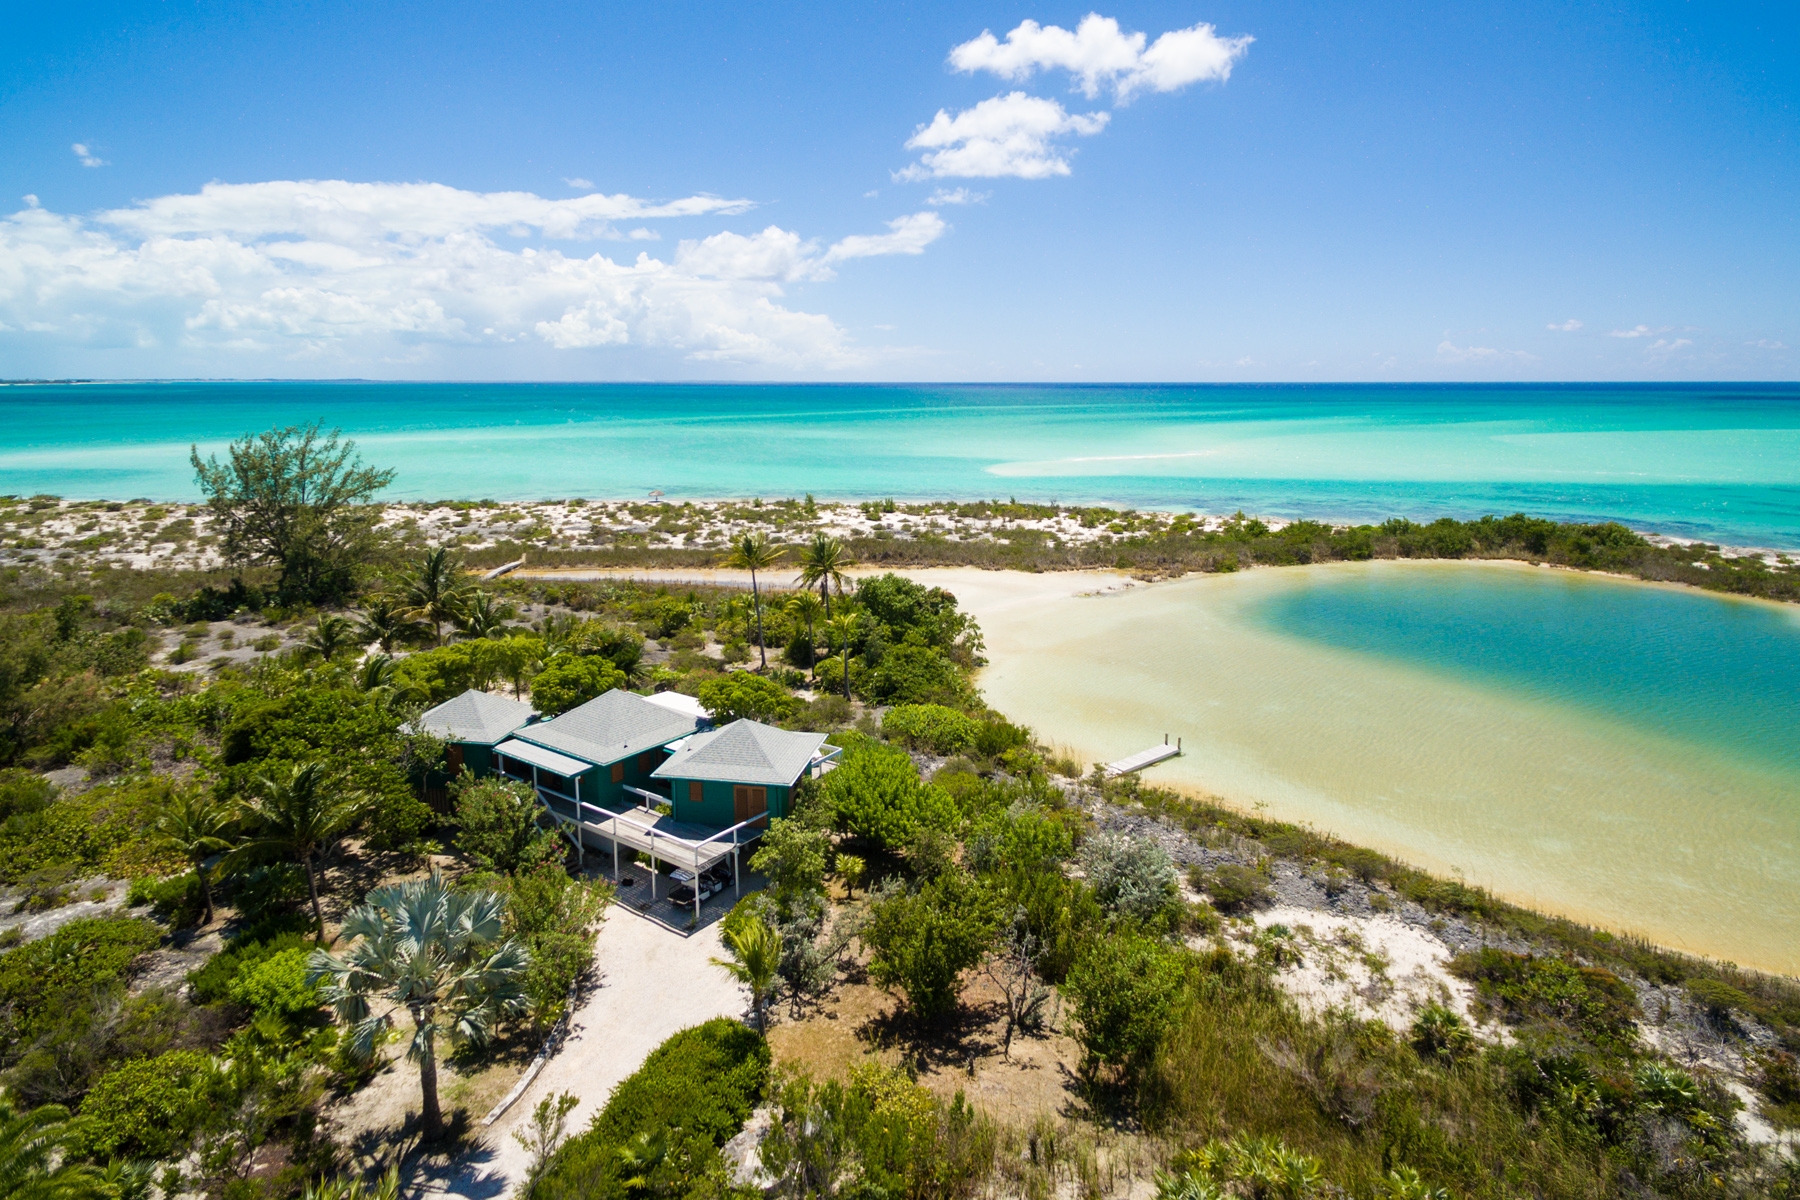 Single Family Home for Sale at Orchid Point Oceanfront Pine Cay, Pine Cay, TCI Turks And Caicos Islands